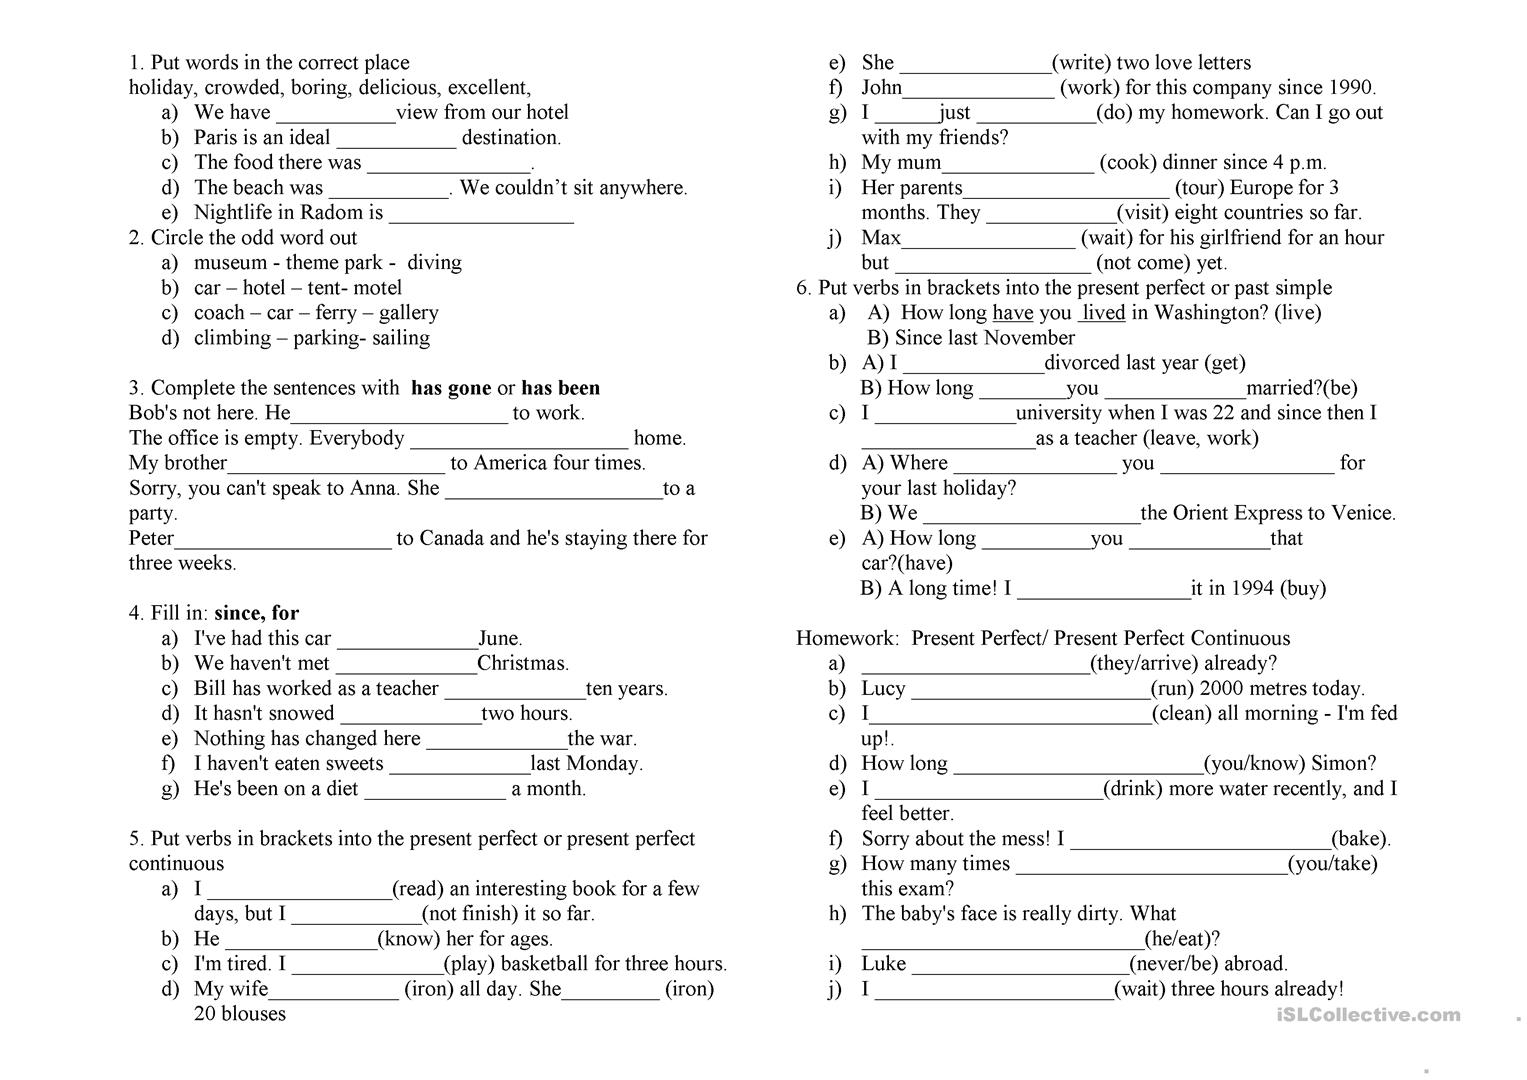 36 FREE ESL Present perfect or past simple tense worksheets